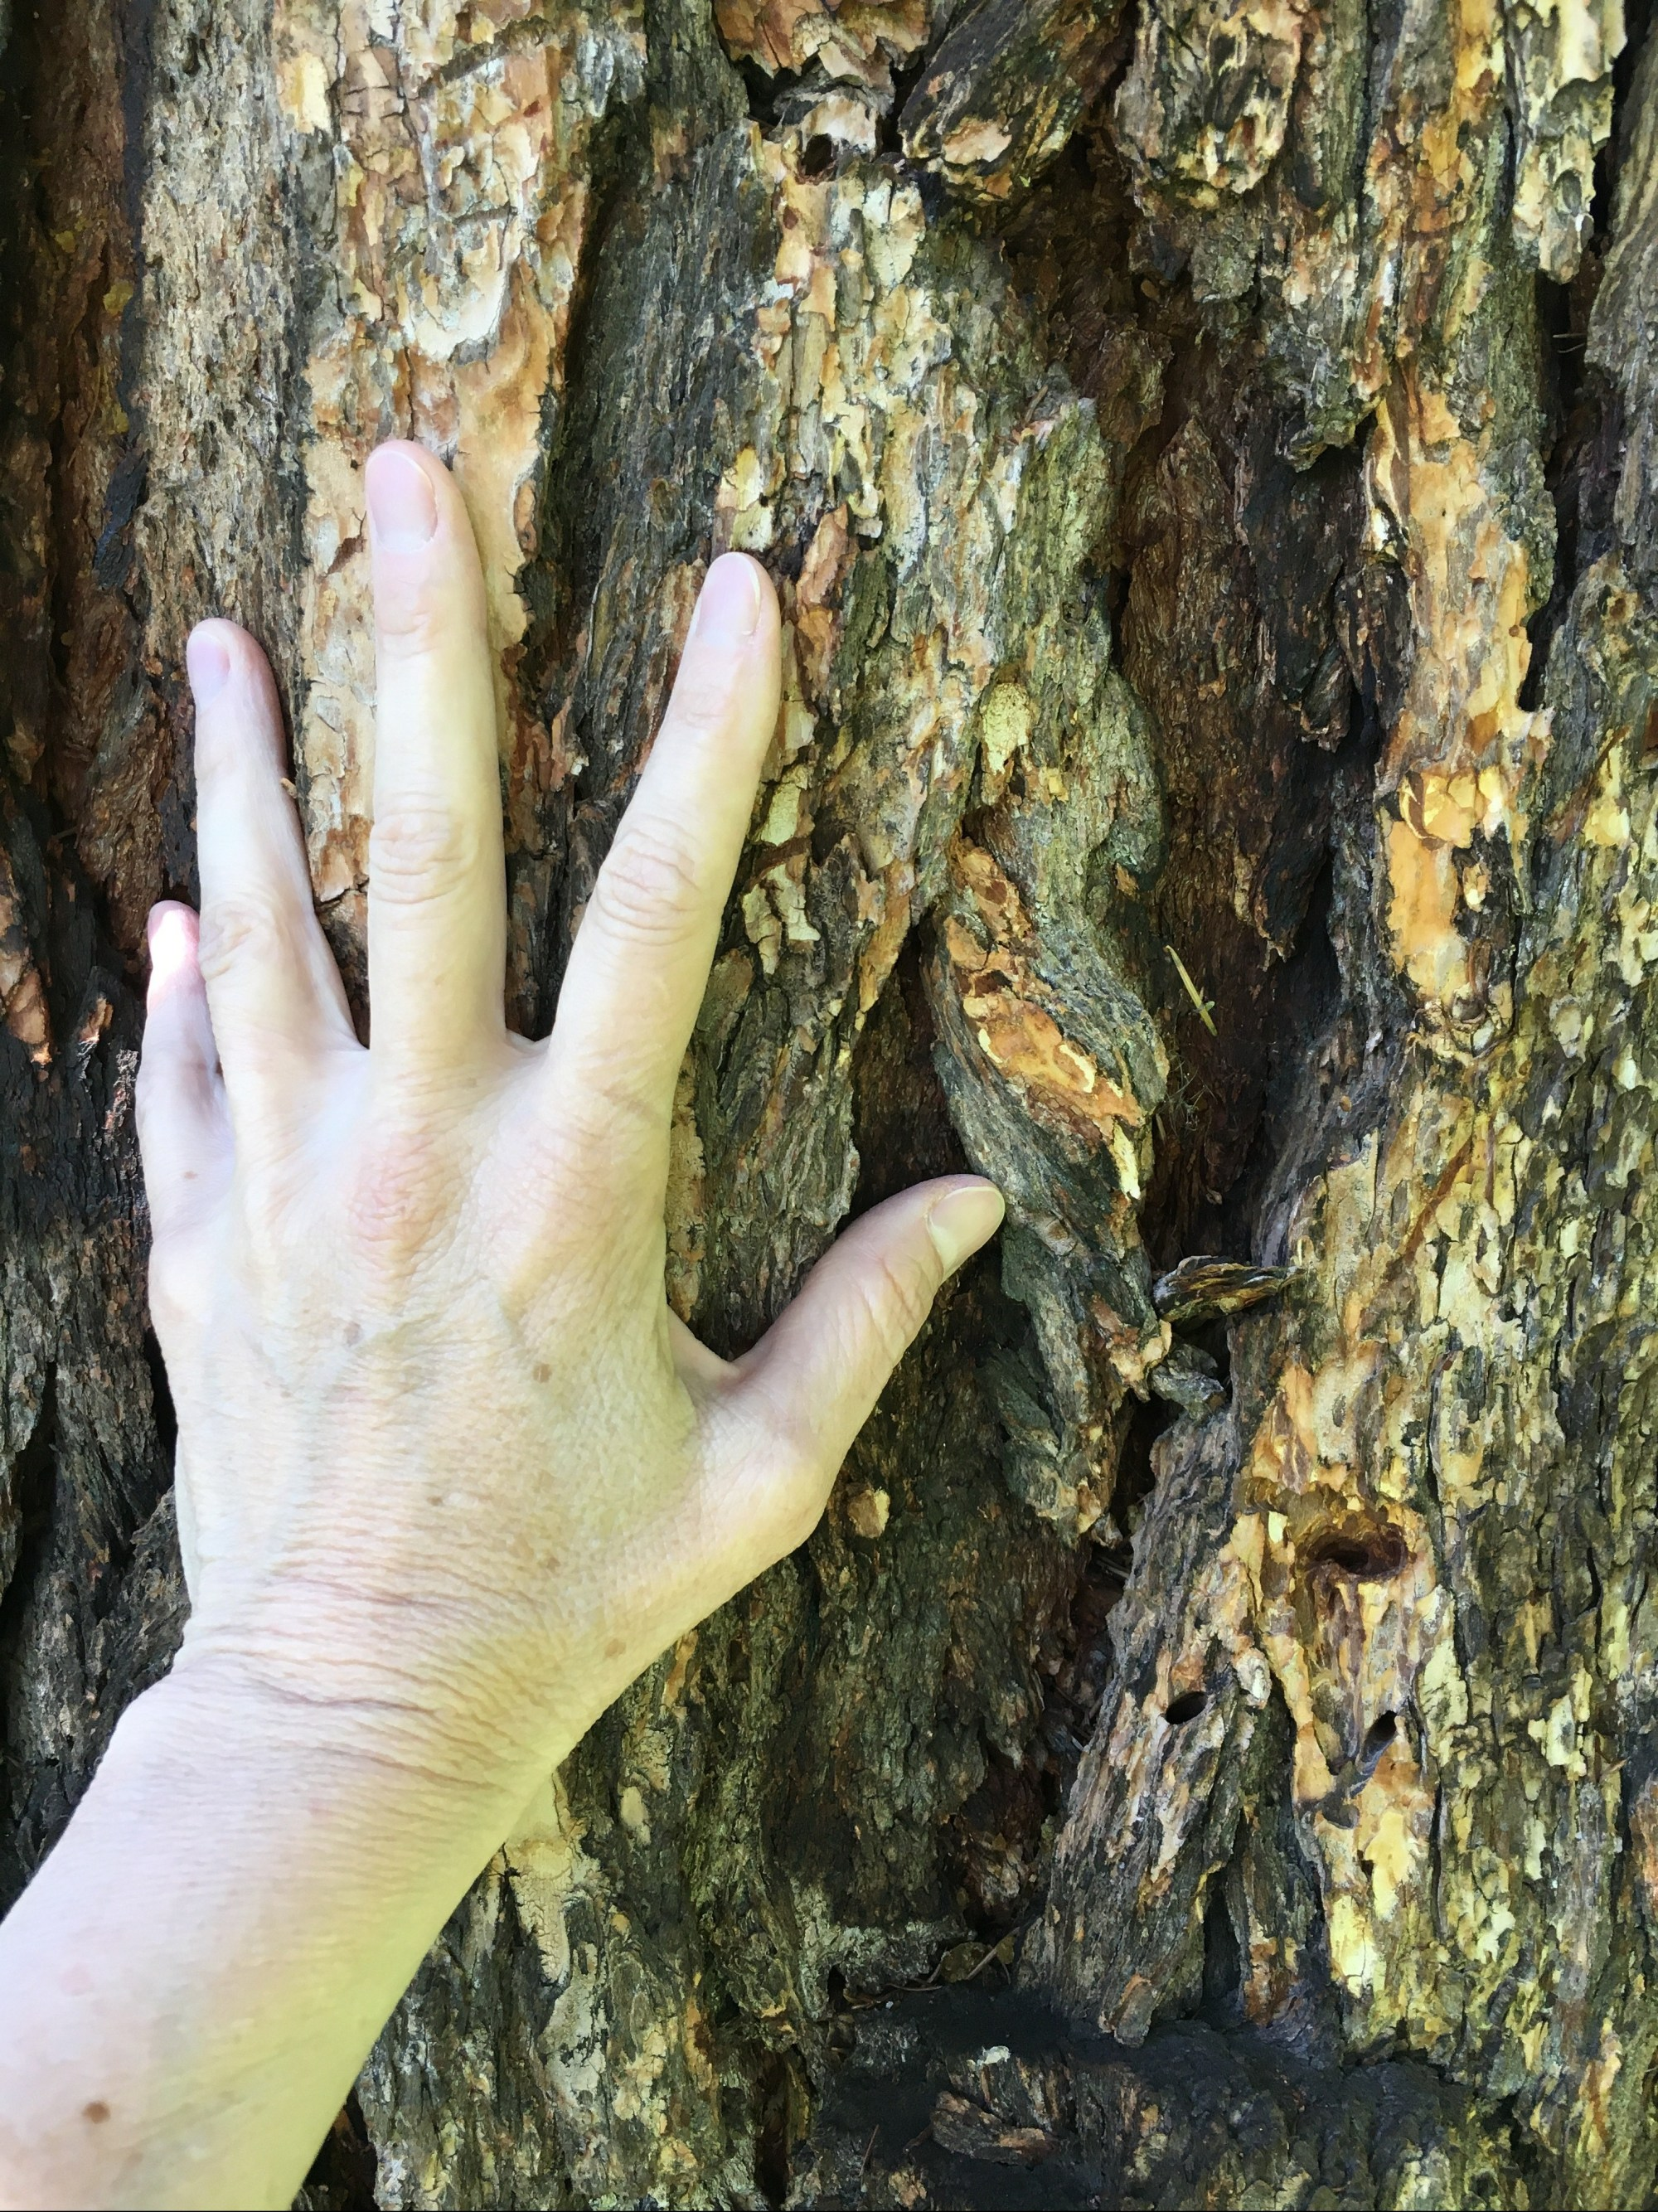 Laying hands on a tree